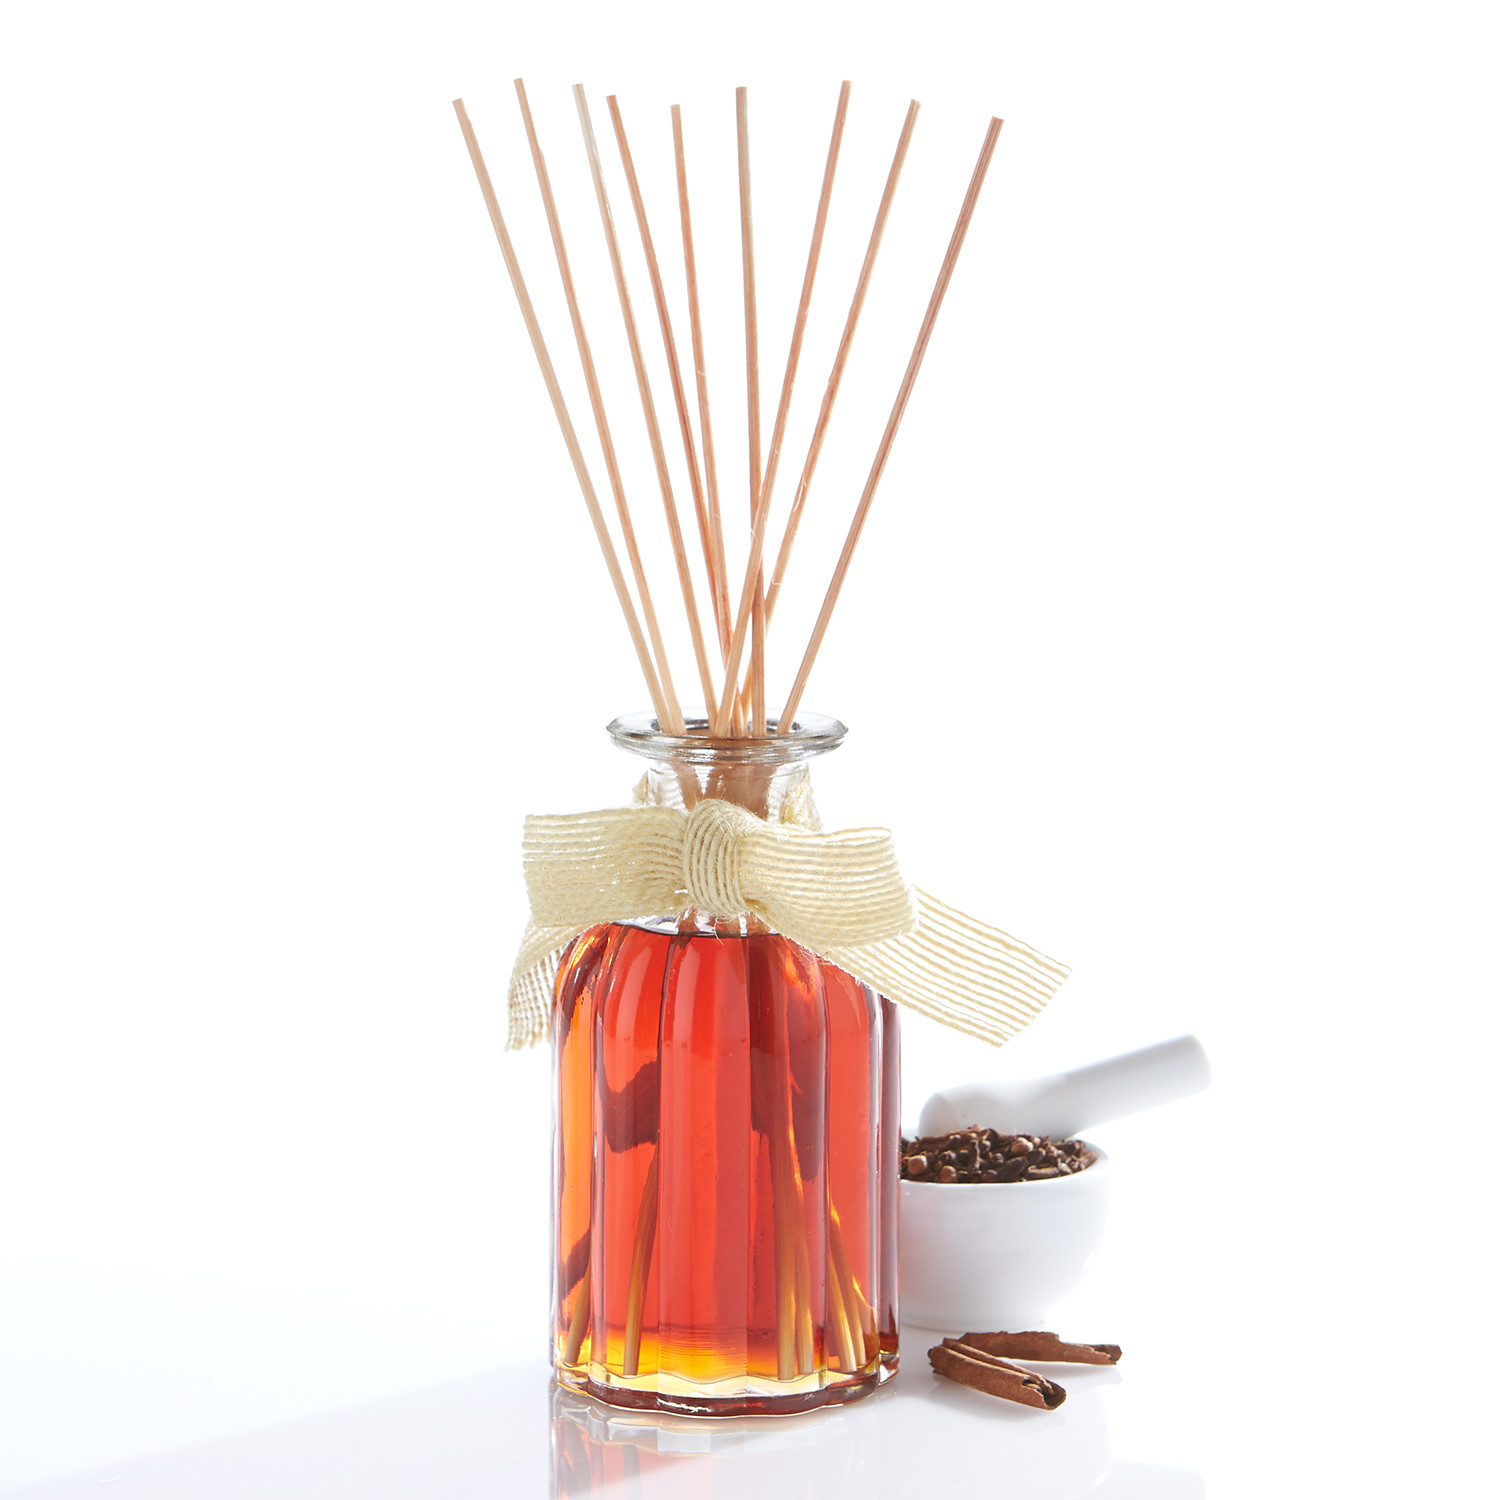 Spiced Cake Reed Diffuser